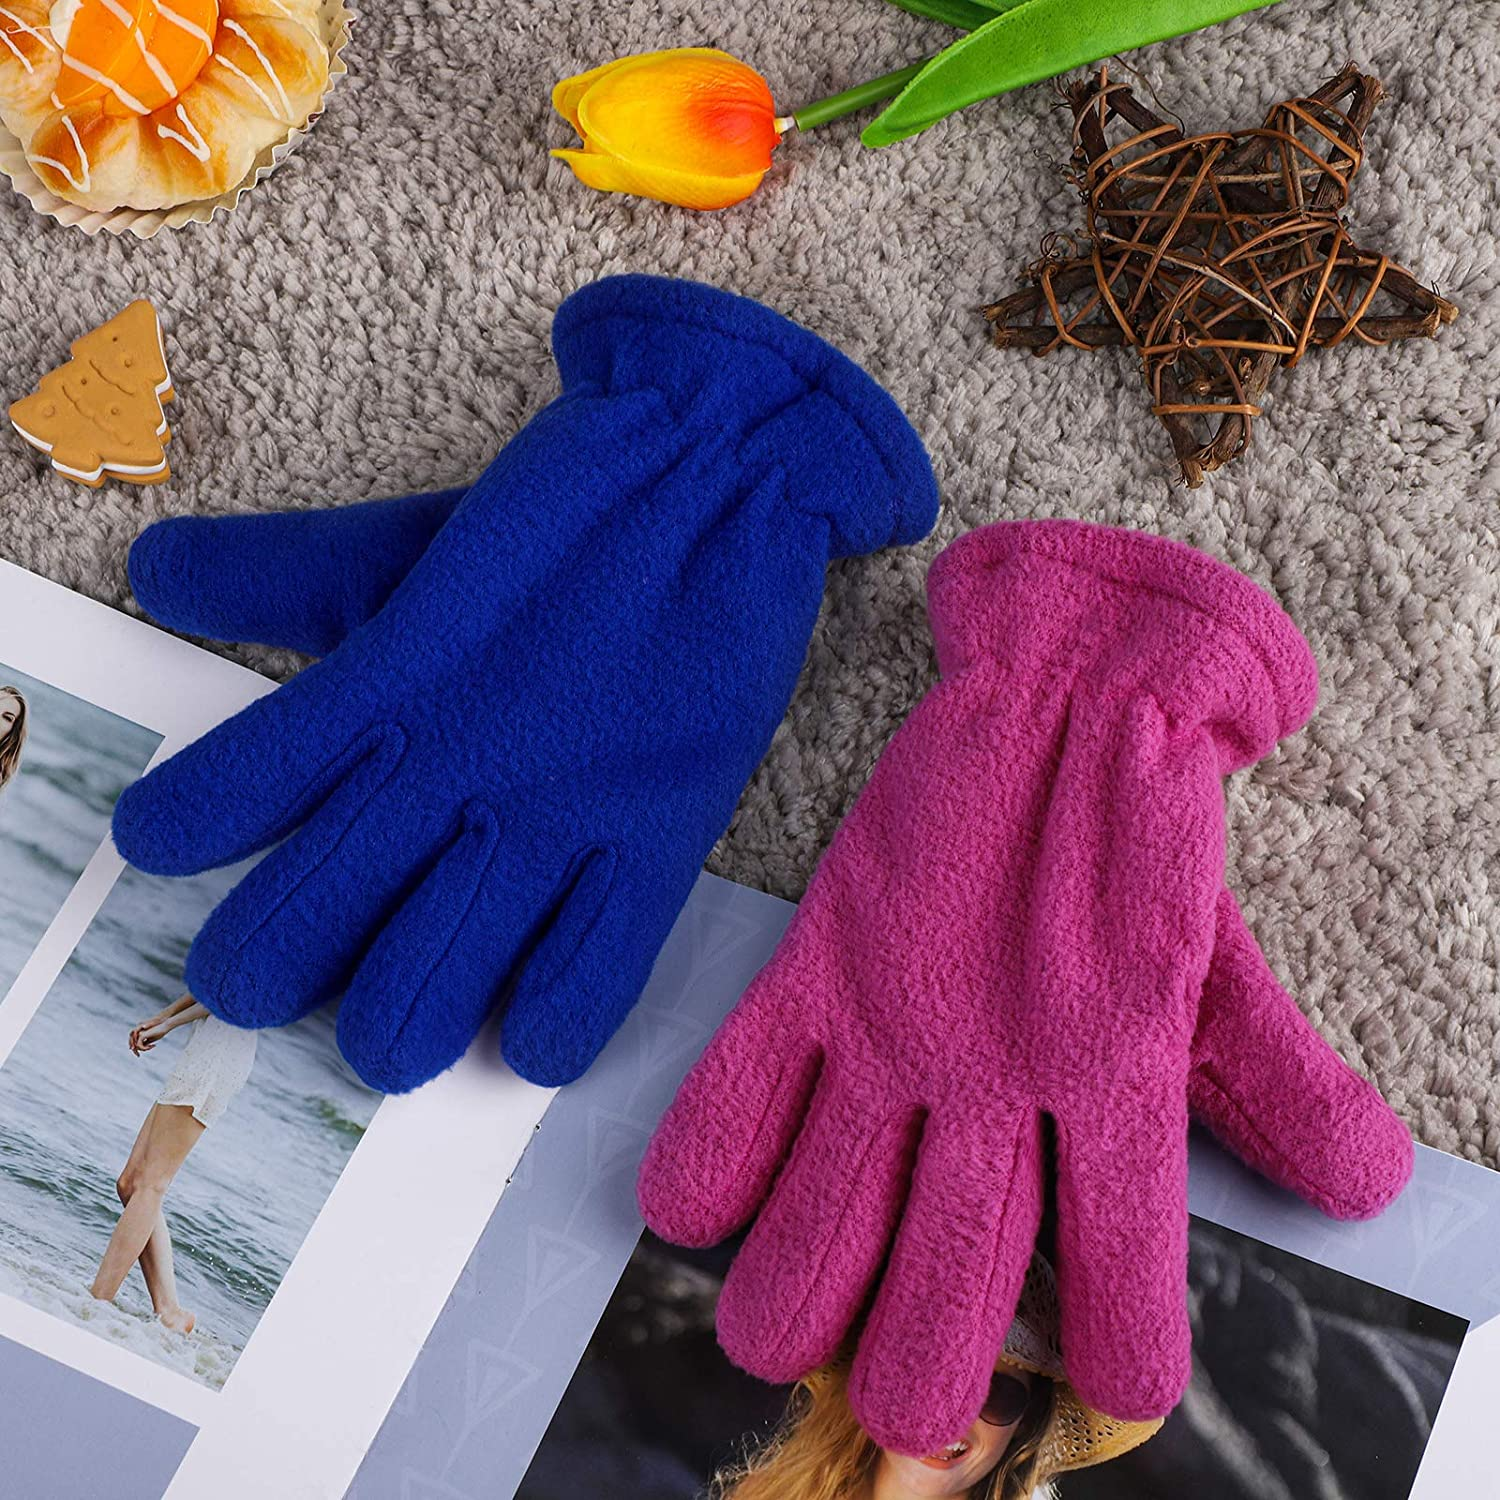 Cooraby 2 Pairs Kids Fleece Gloves Winter Lined Thick Mittens Warm Gloves for Outdoors Activities Supplies